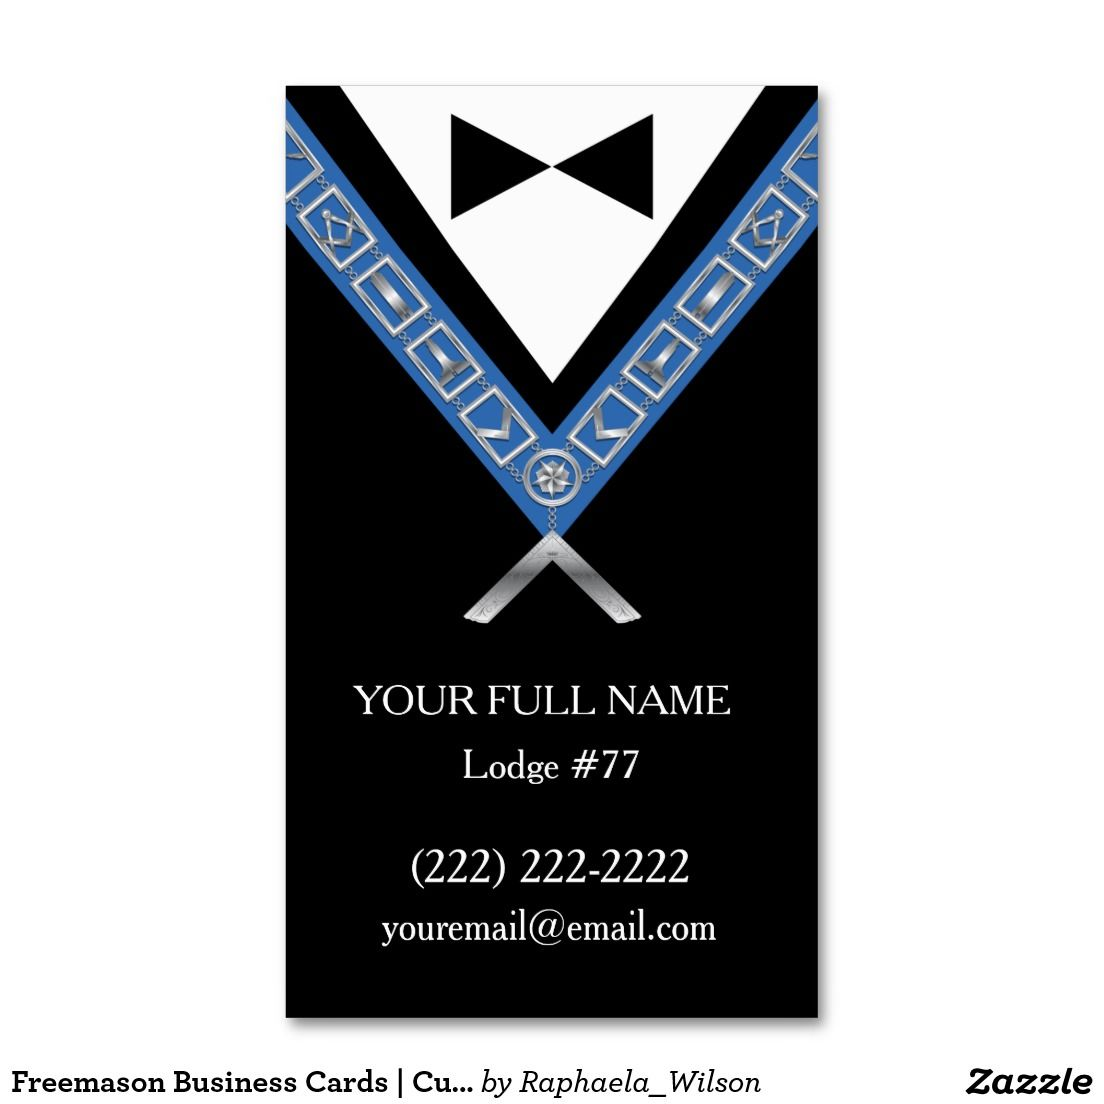 freemason business cards custom masonic template custom